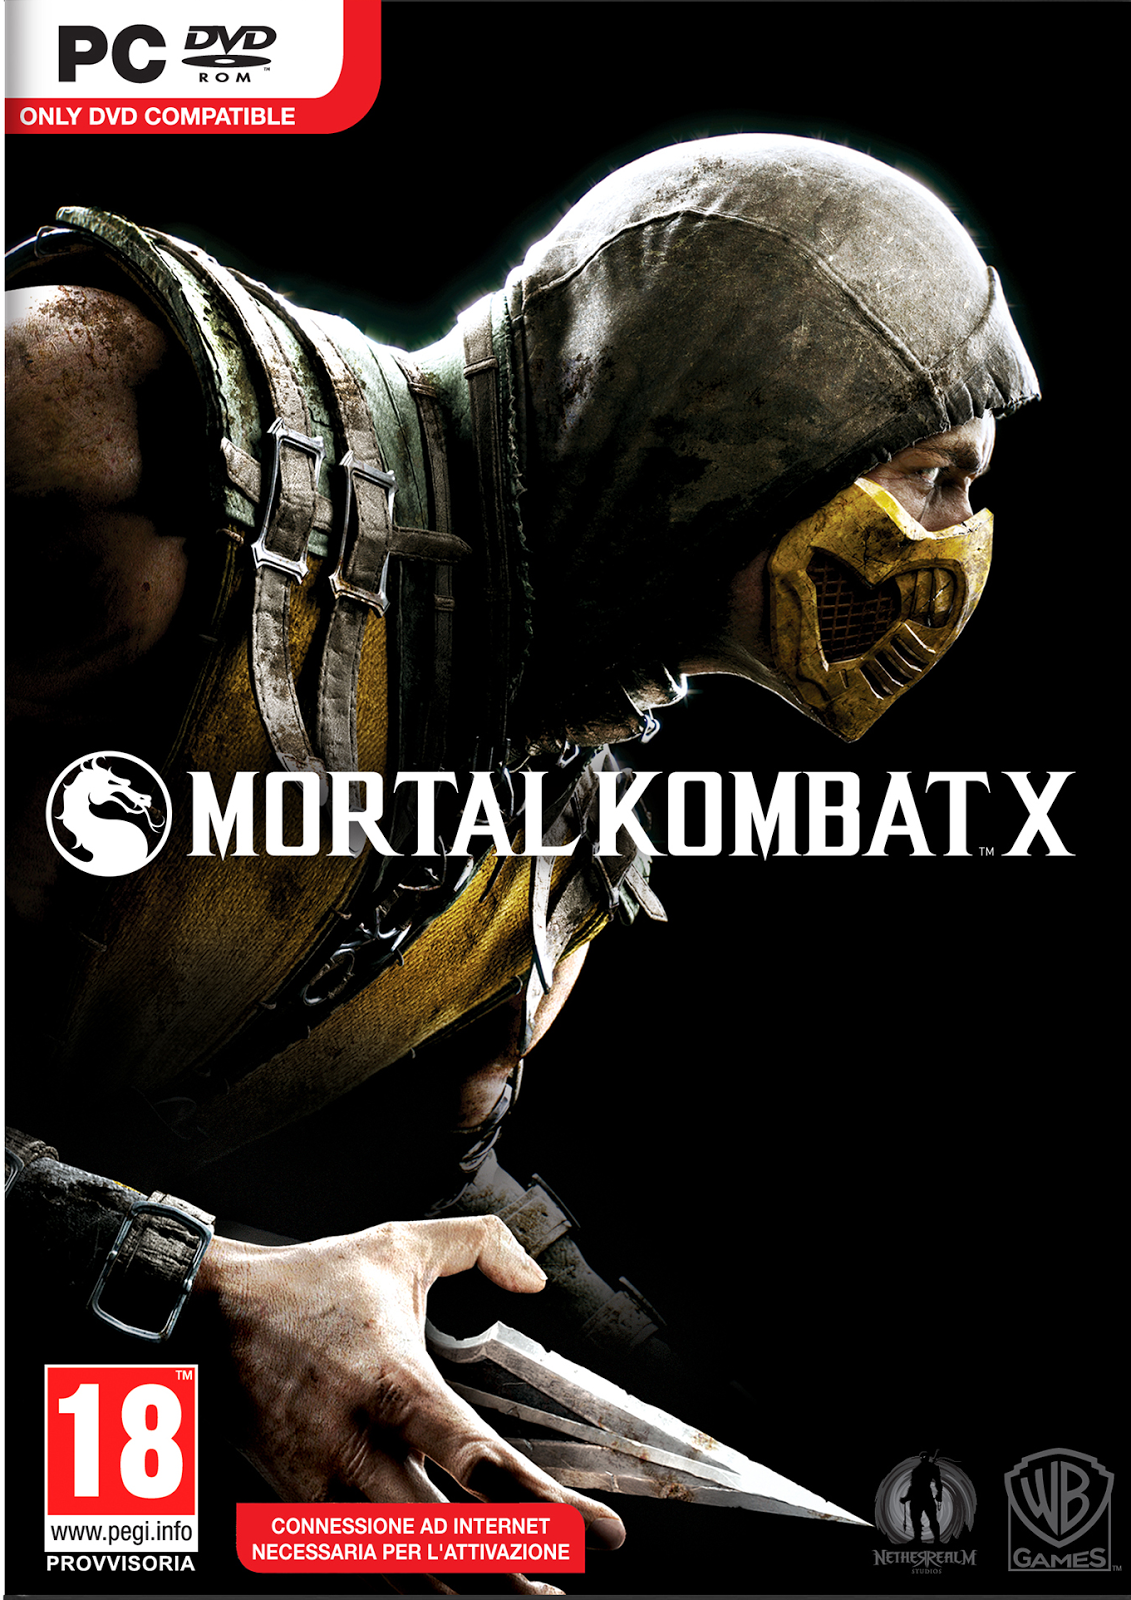 Capa Mortal Kombat X Torrent PC 2015